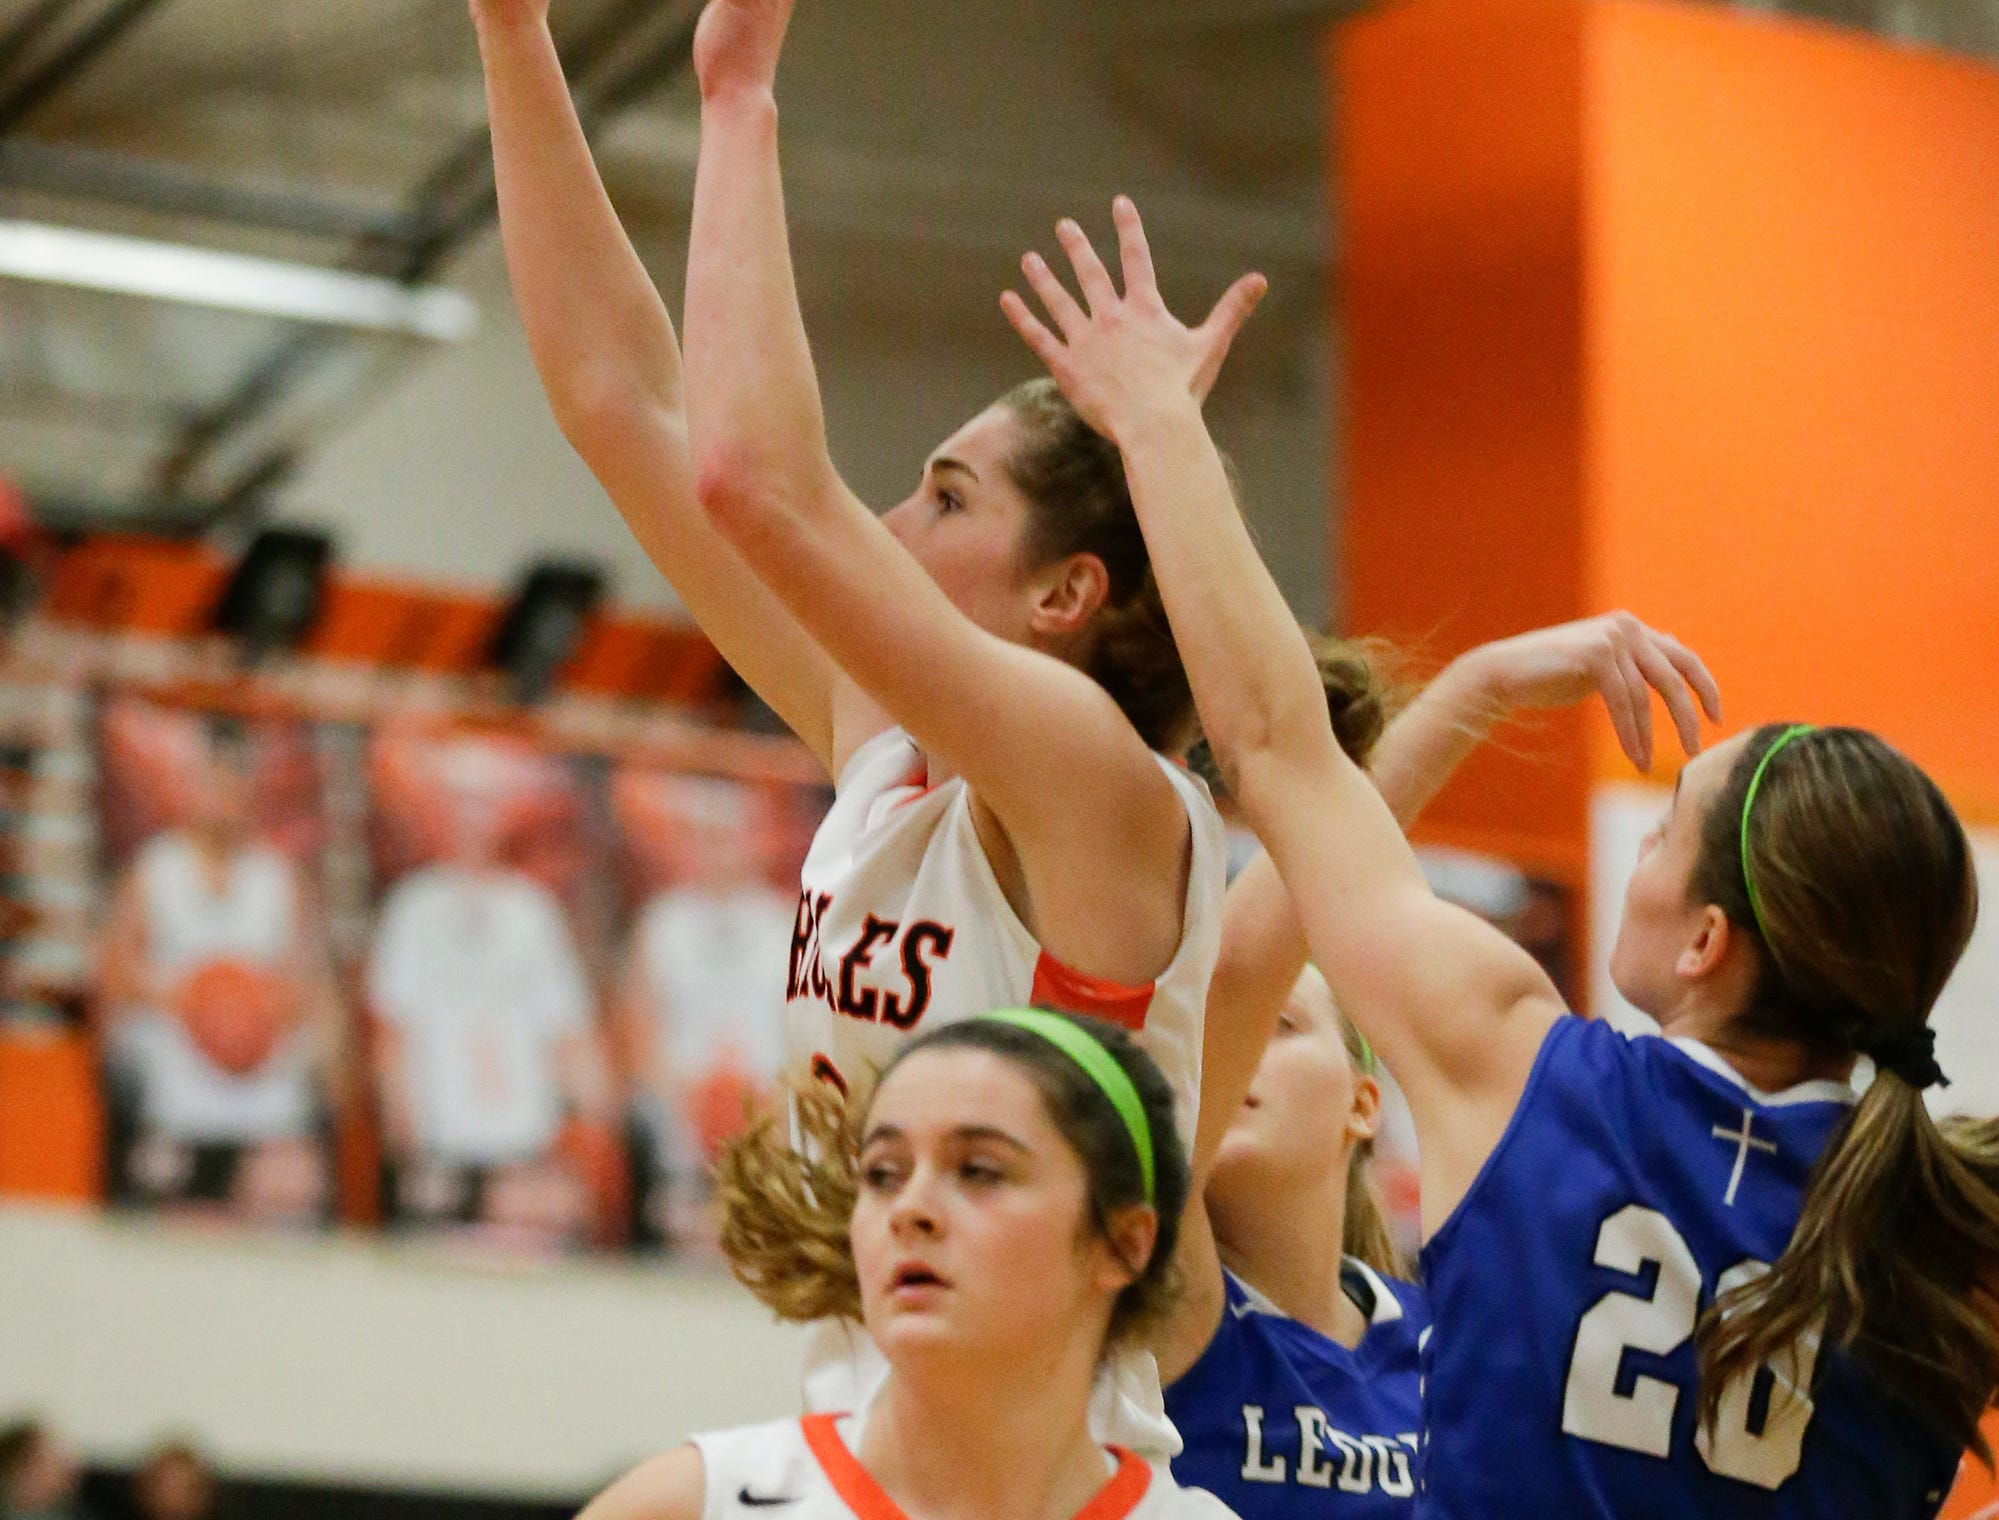 North Fond du Lac High School girls basketball's Paige Smith goes up for a basket against St. Mary's Springs Academy during their game Friday, January 4, 2019 in North Fond du lac. Doug Raflik/USA TODAY NETWORK-Wisconsin